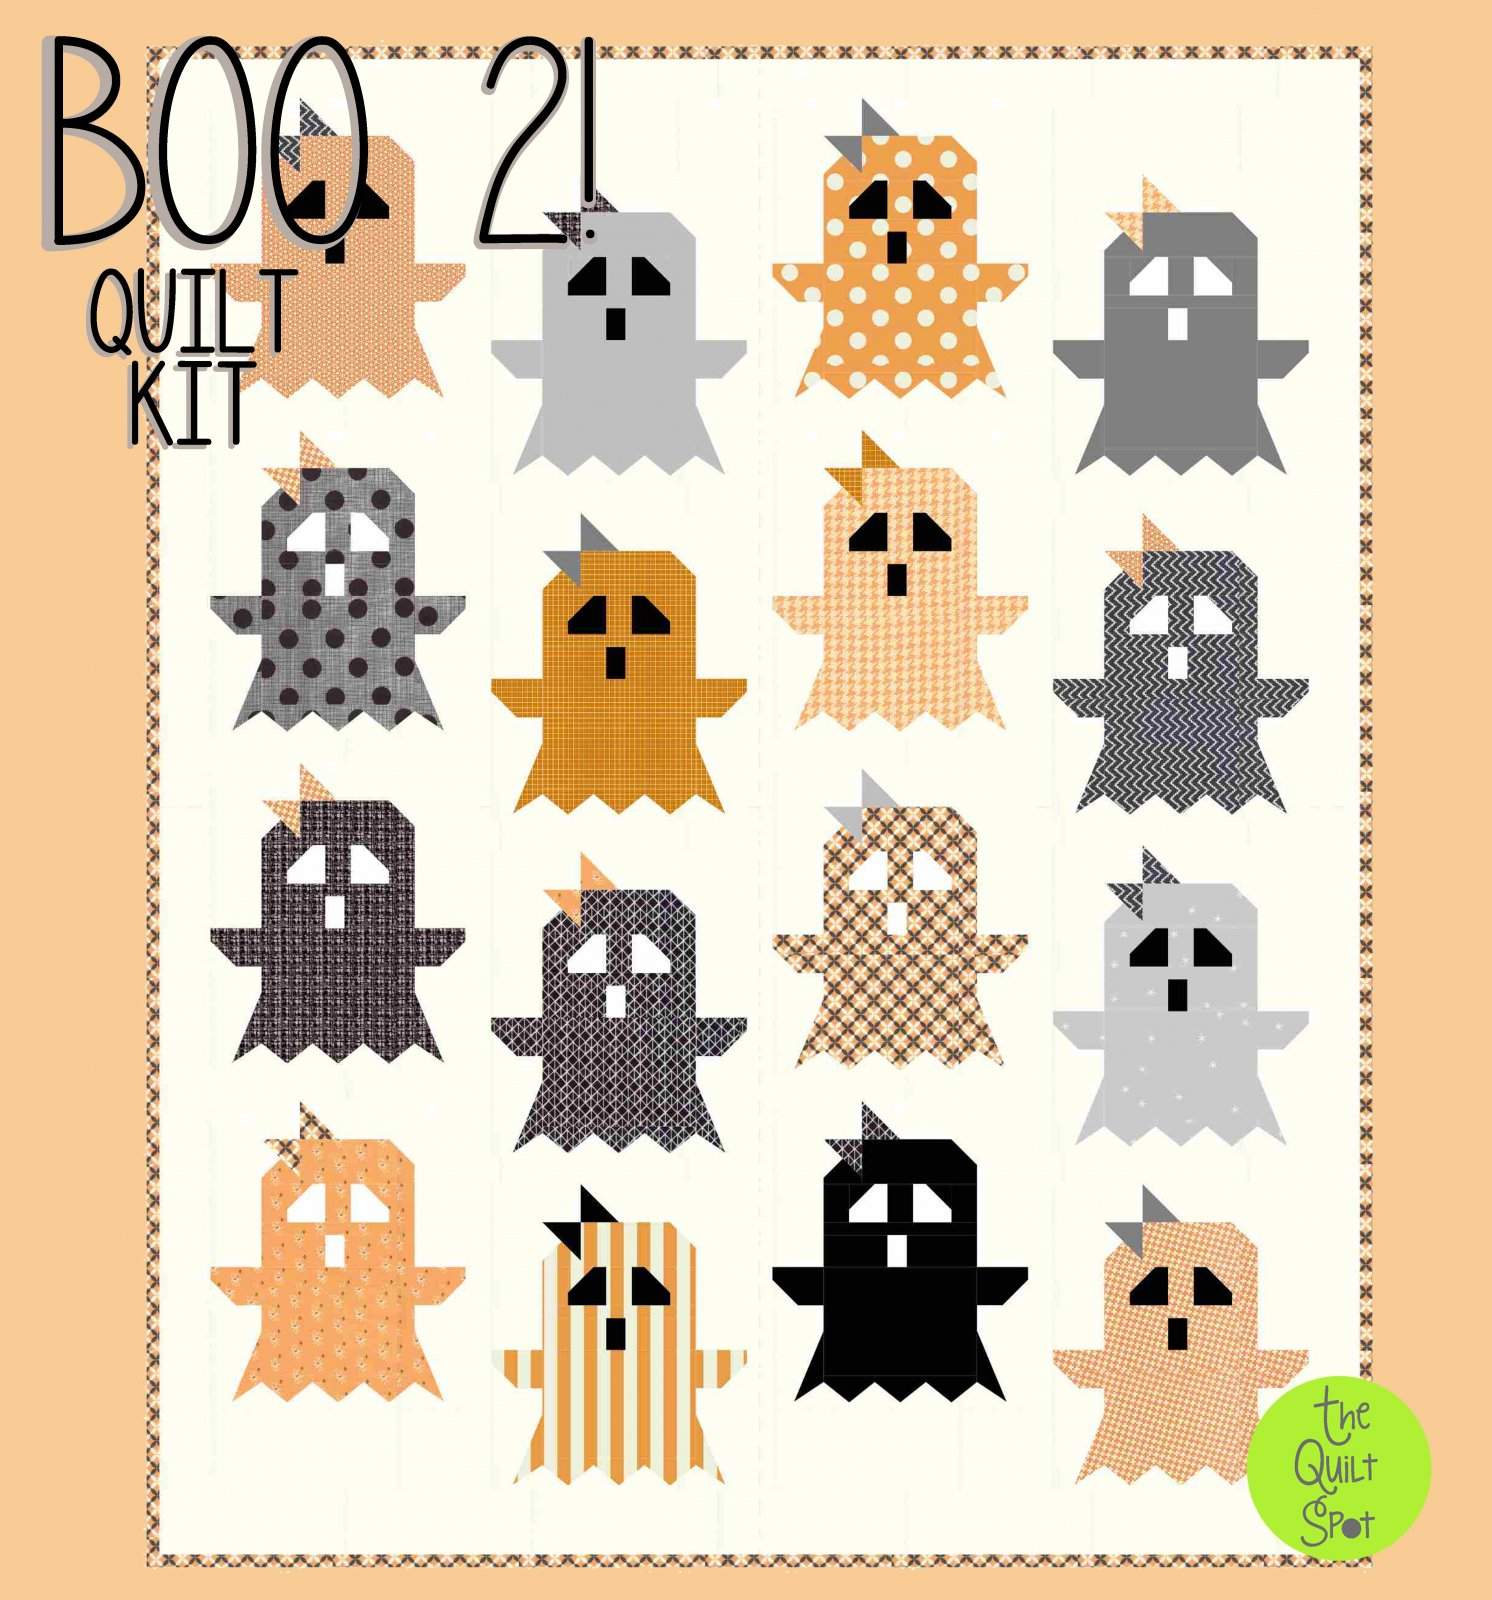 Boo 2! Quilt Top Kit